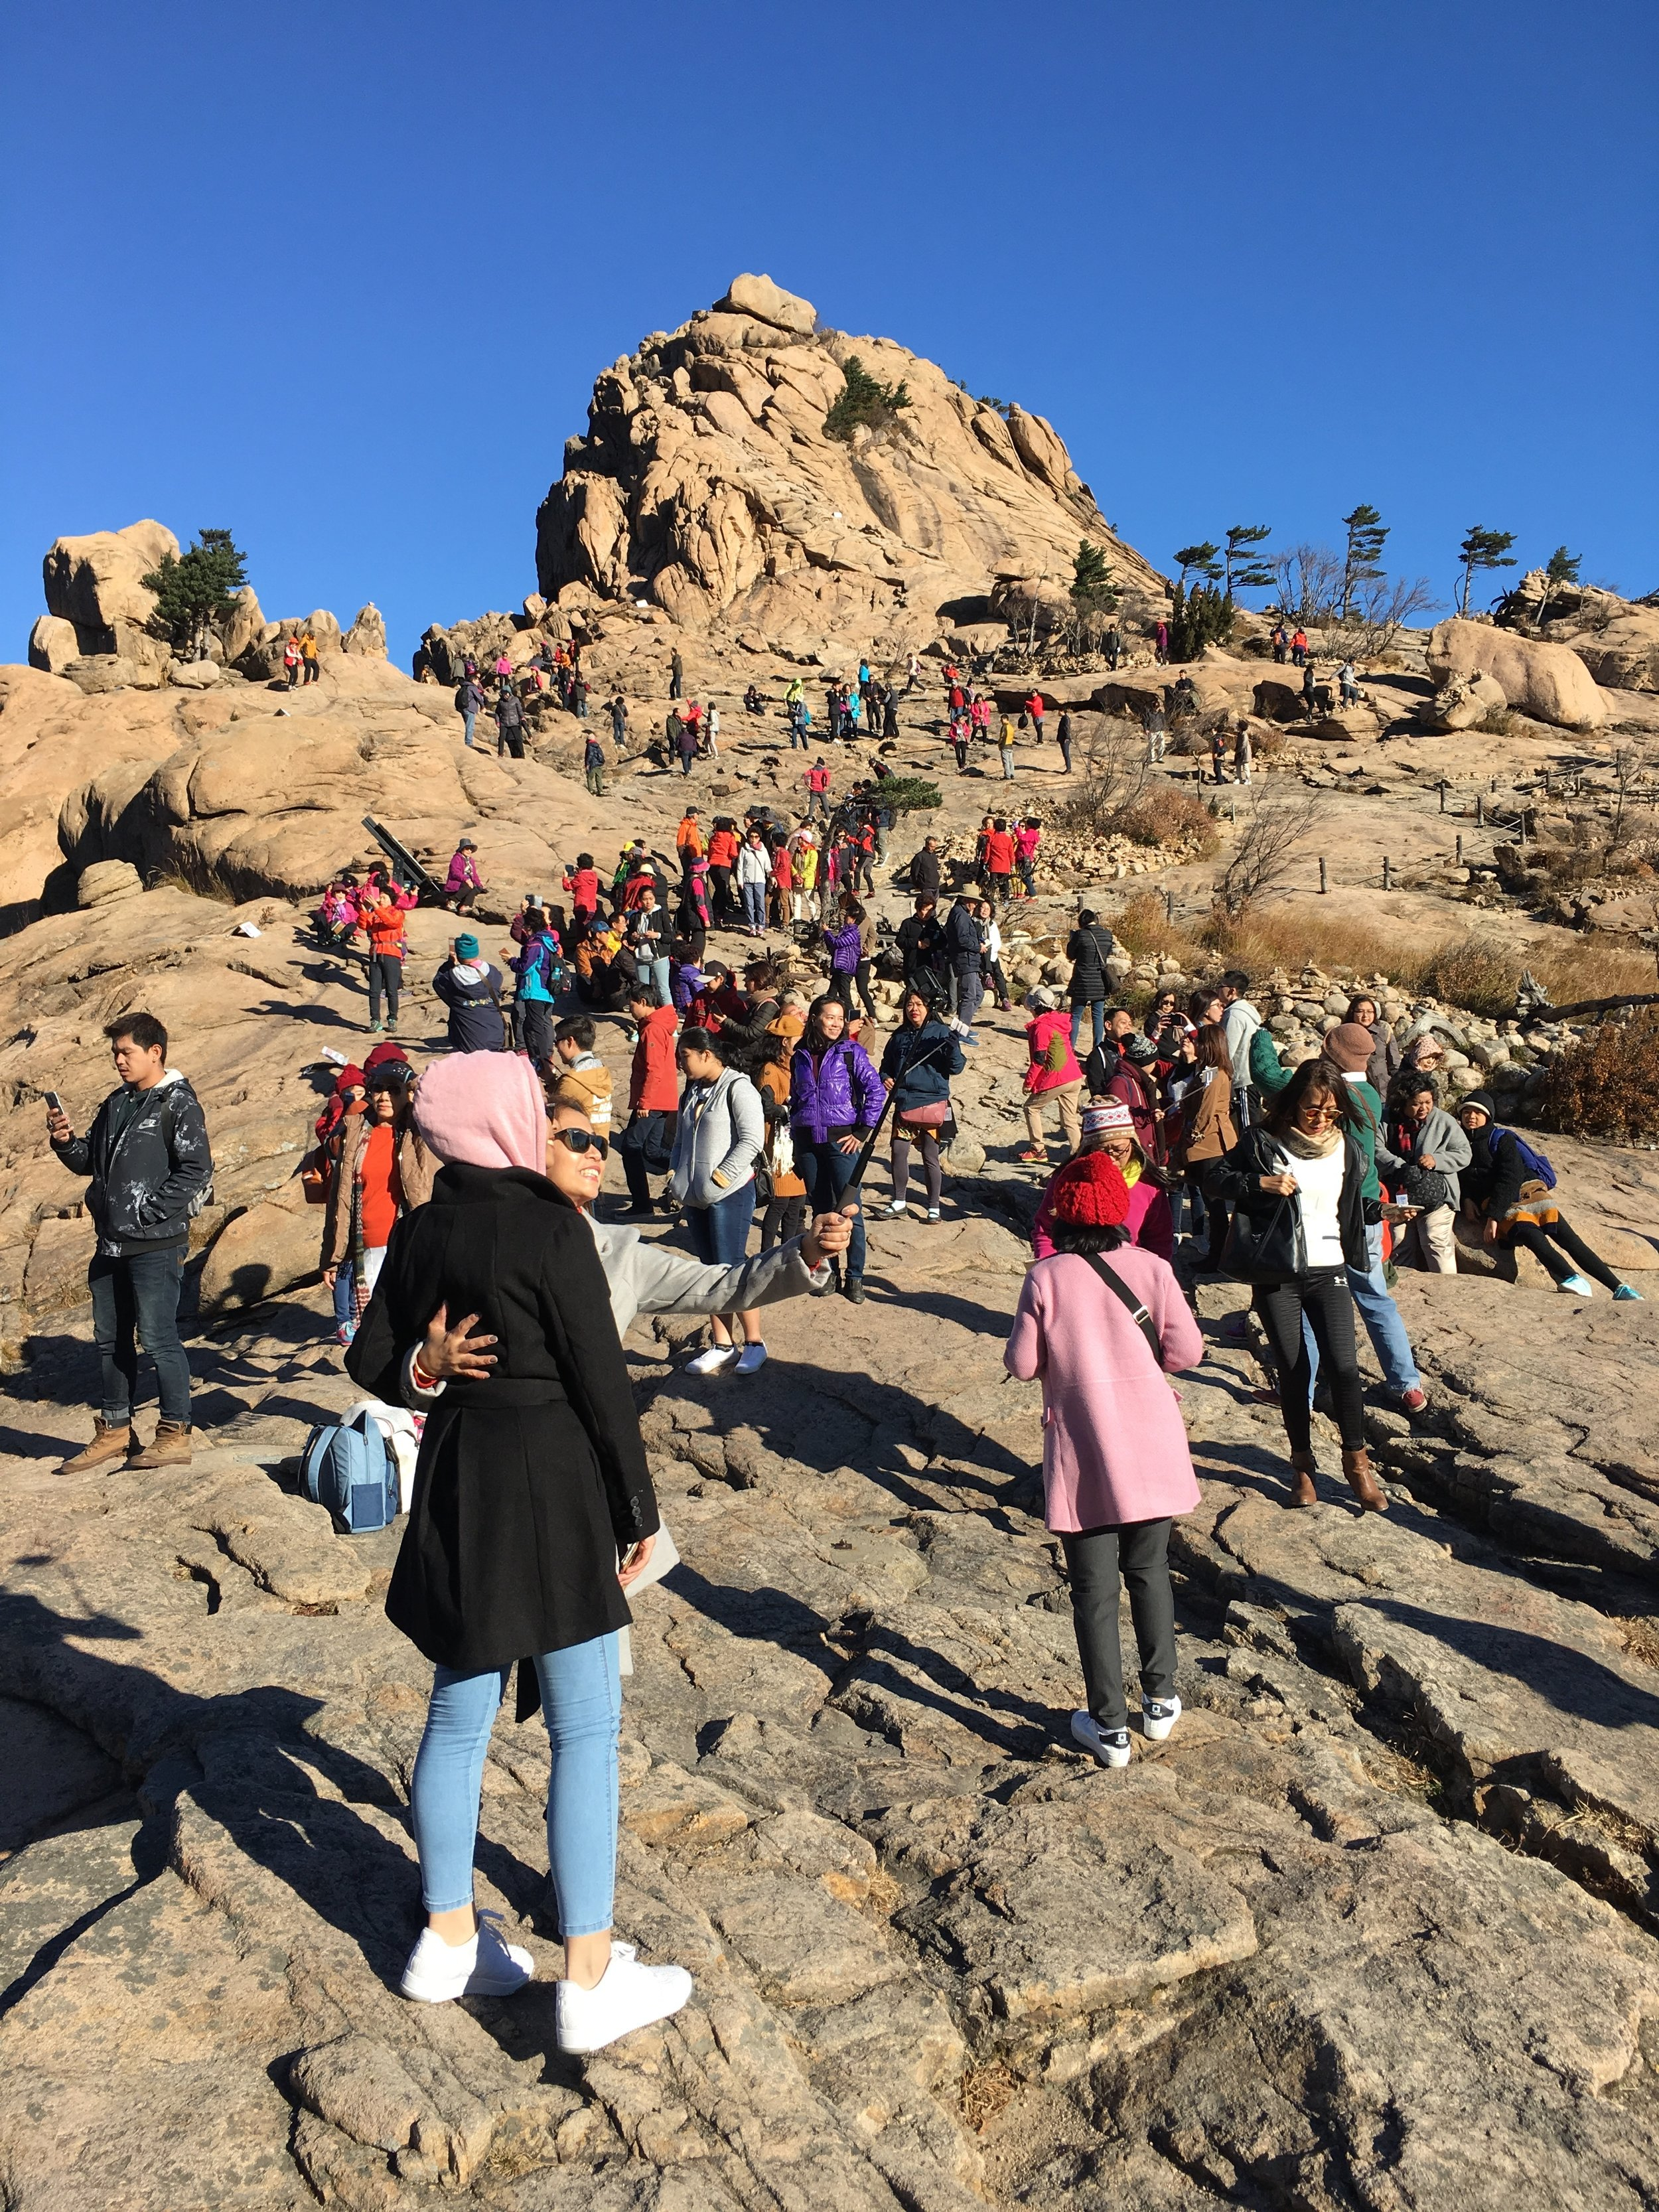 Crowds of tourists enjoying Seoraksan Mountain